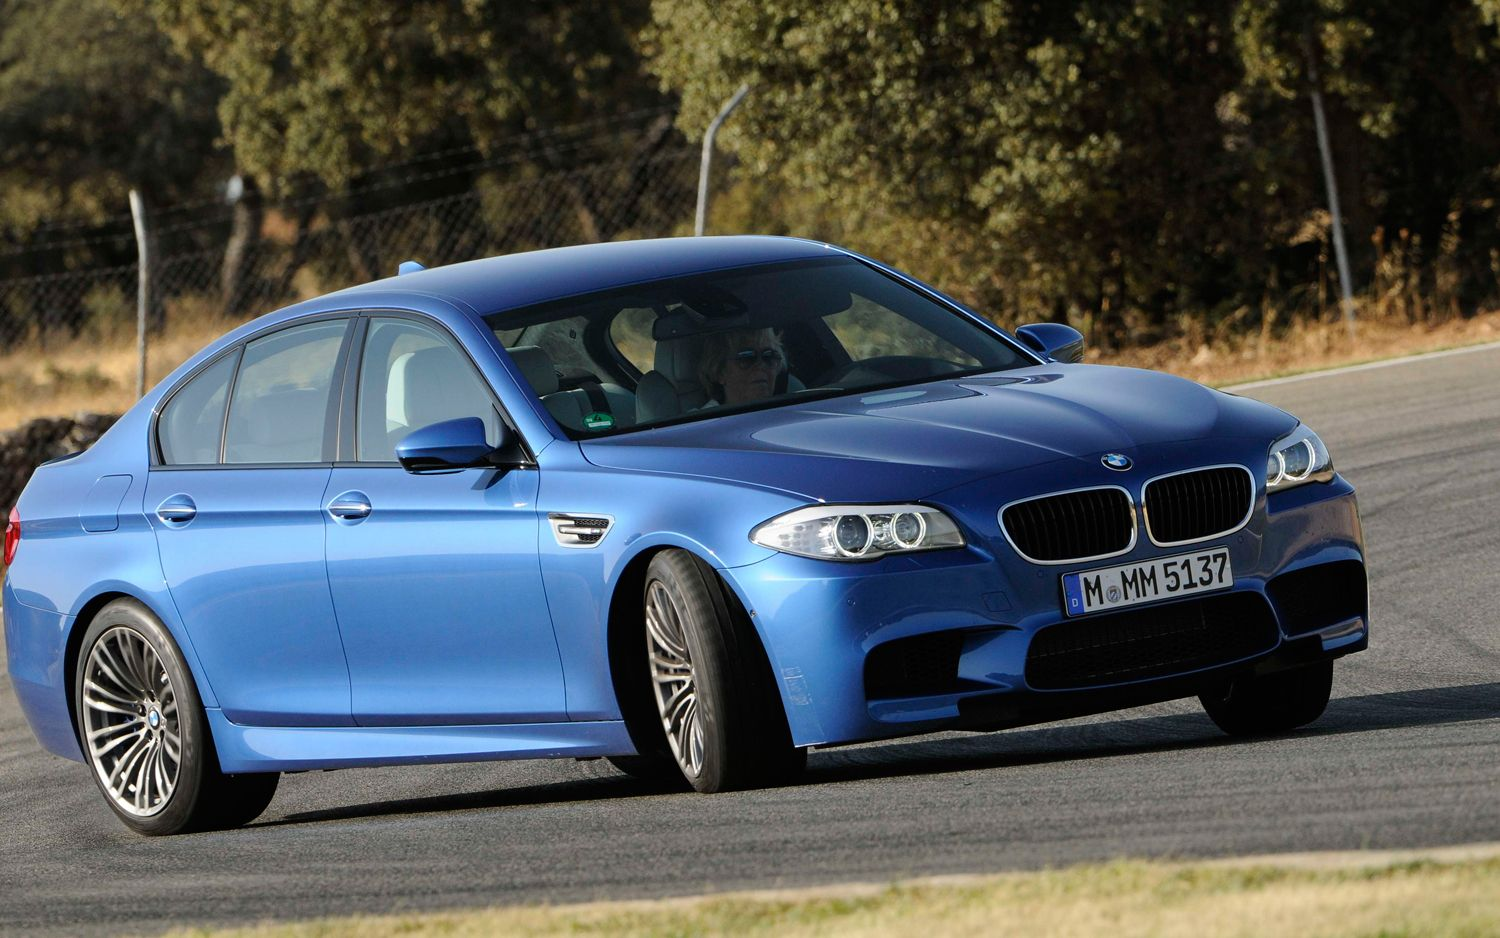 2012 BMW M5 Front Right Side View 21